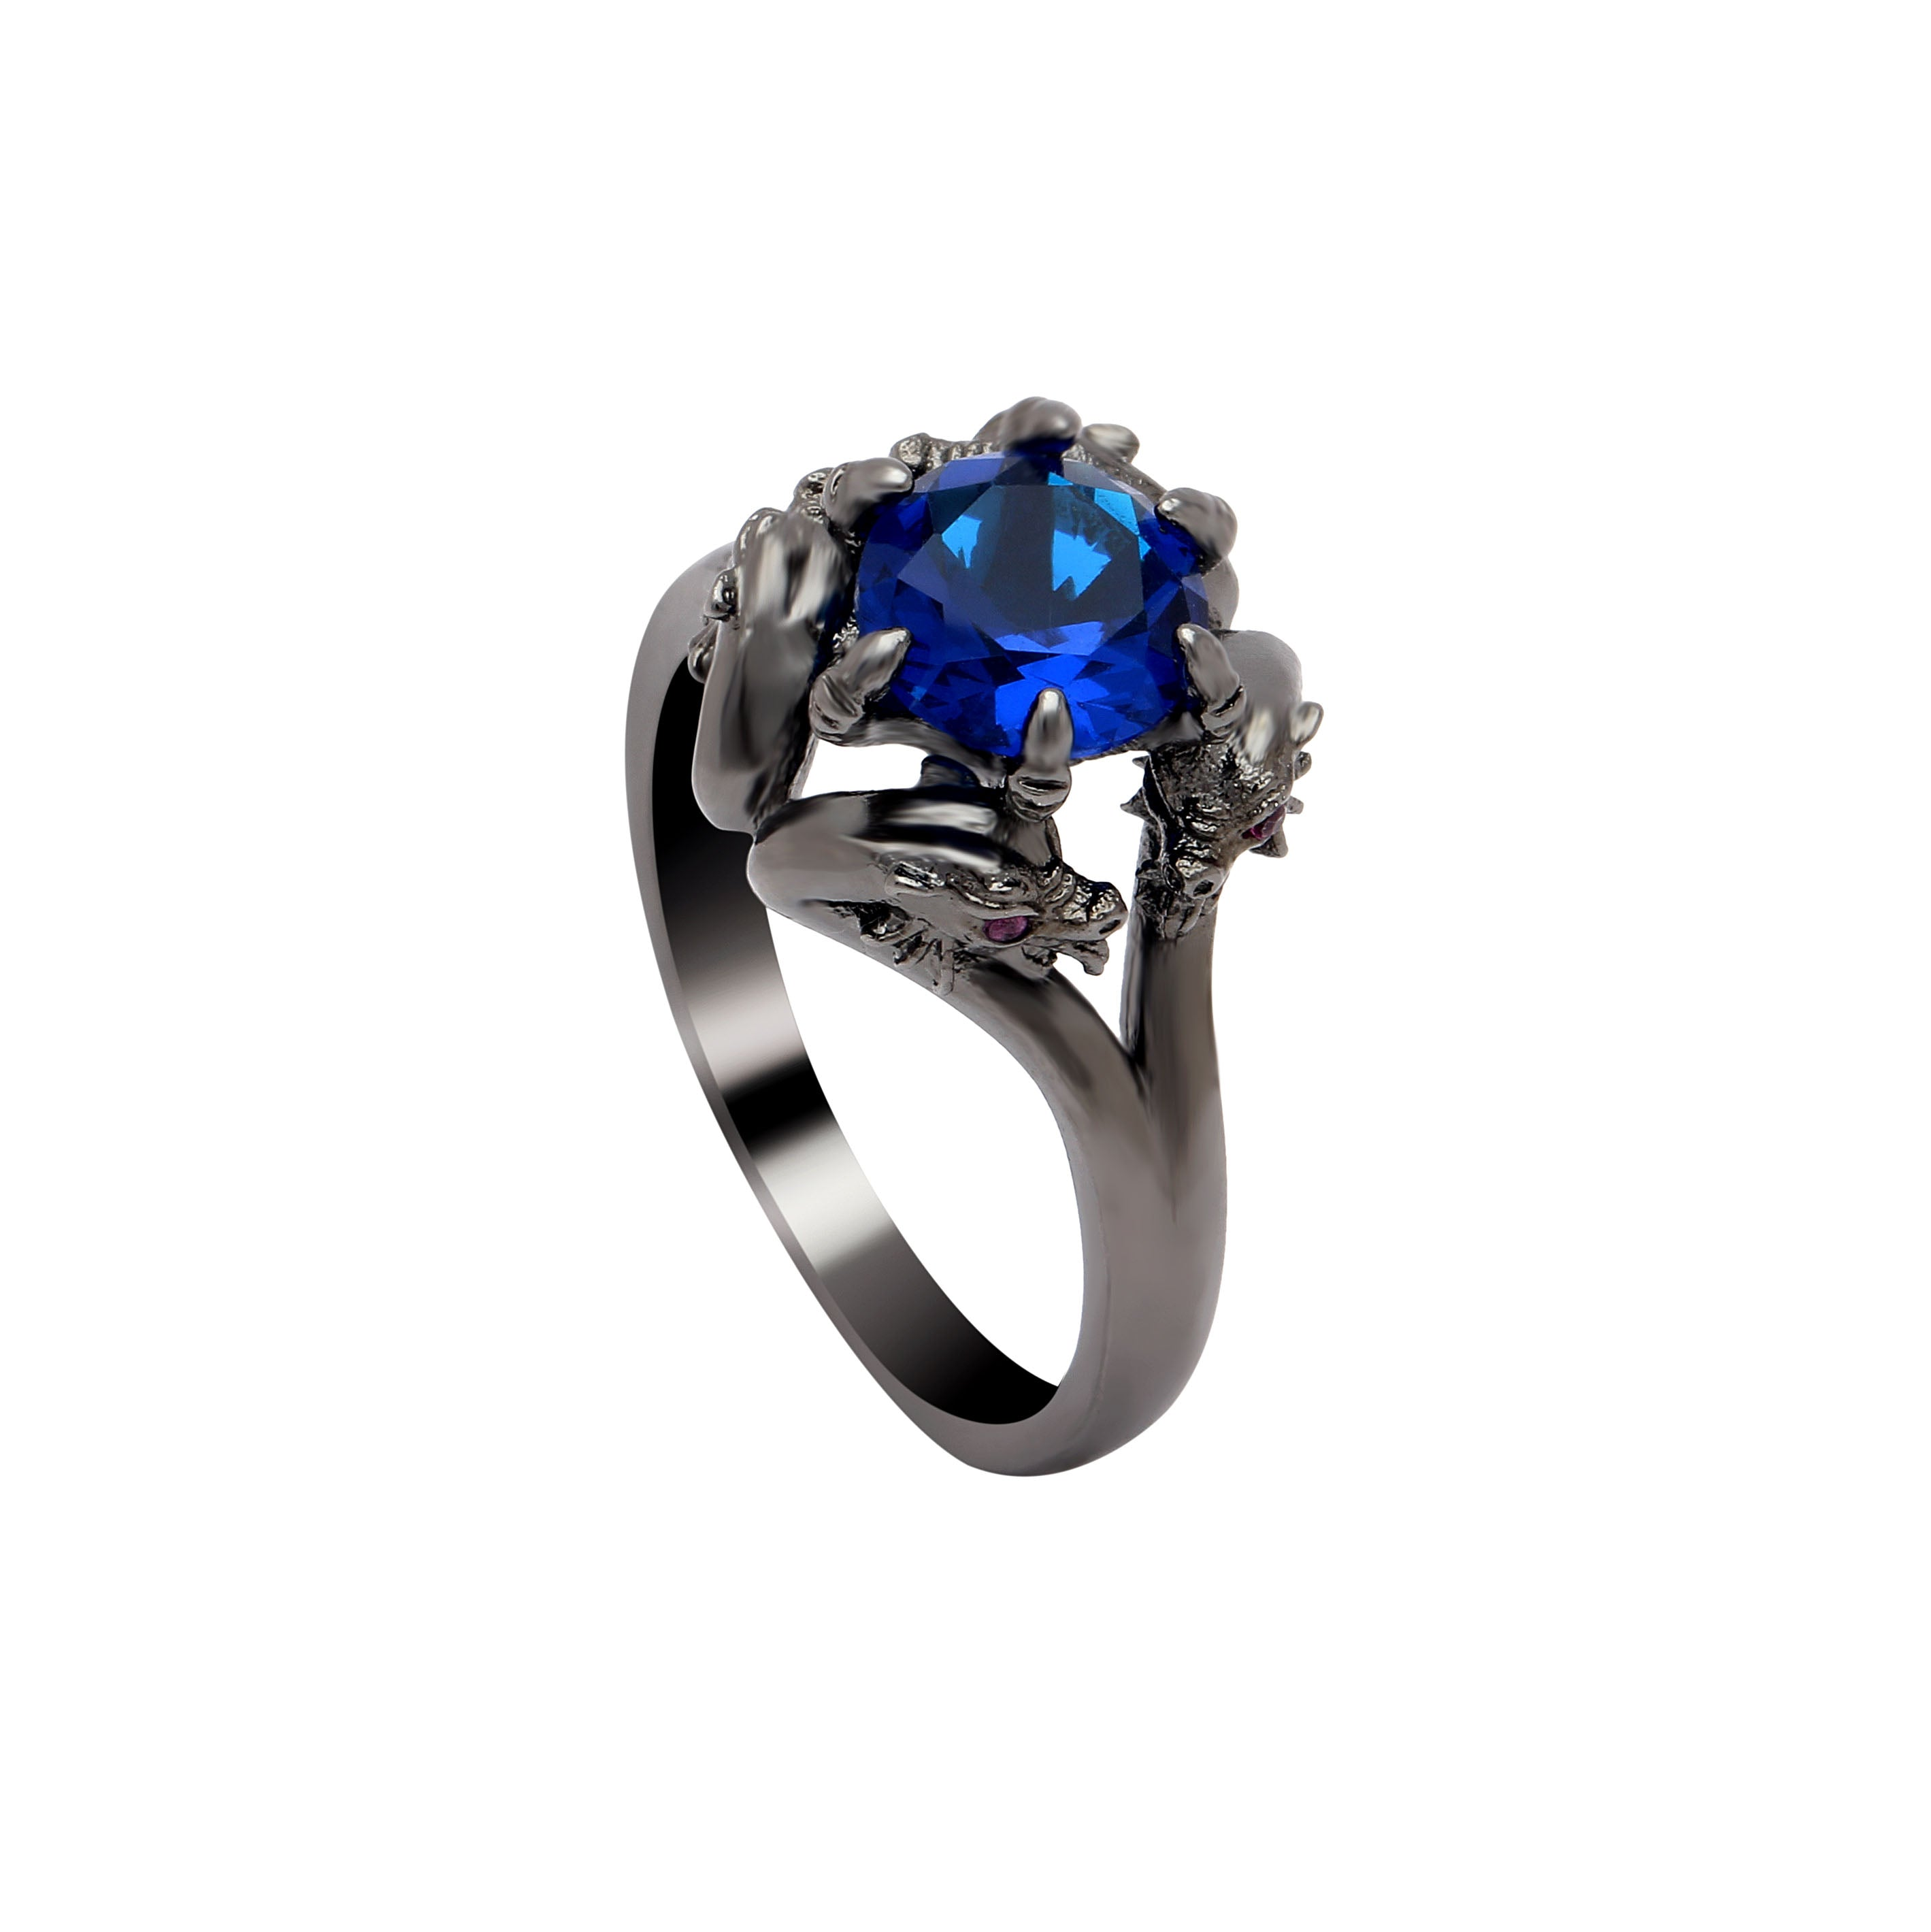 blue magic products jewelry rock vintage fashion birthday cz gold ring for men engagement rings filled dragon big planet crystal punk cool black head